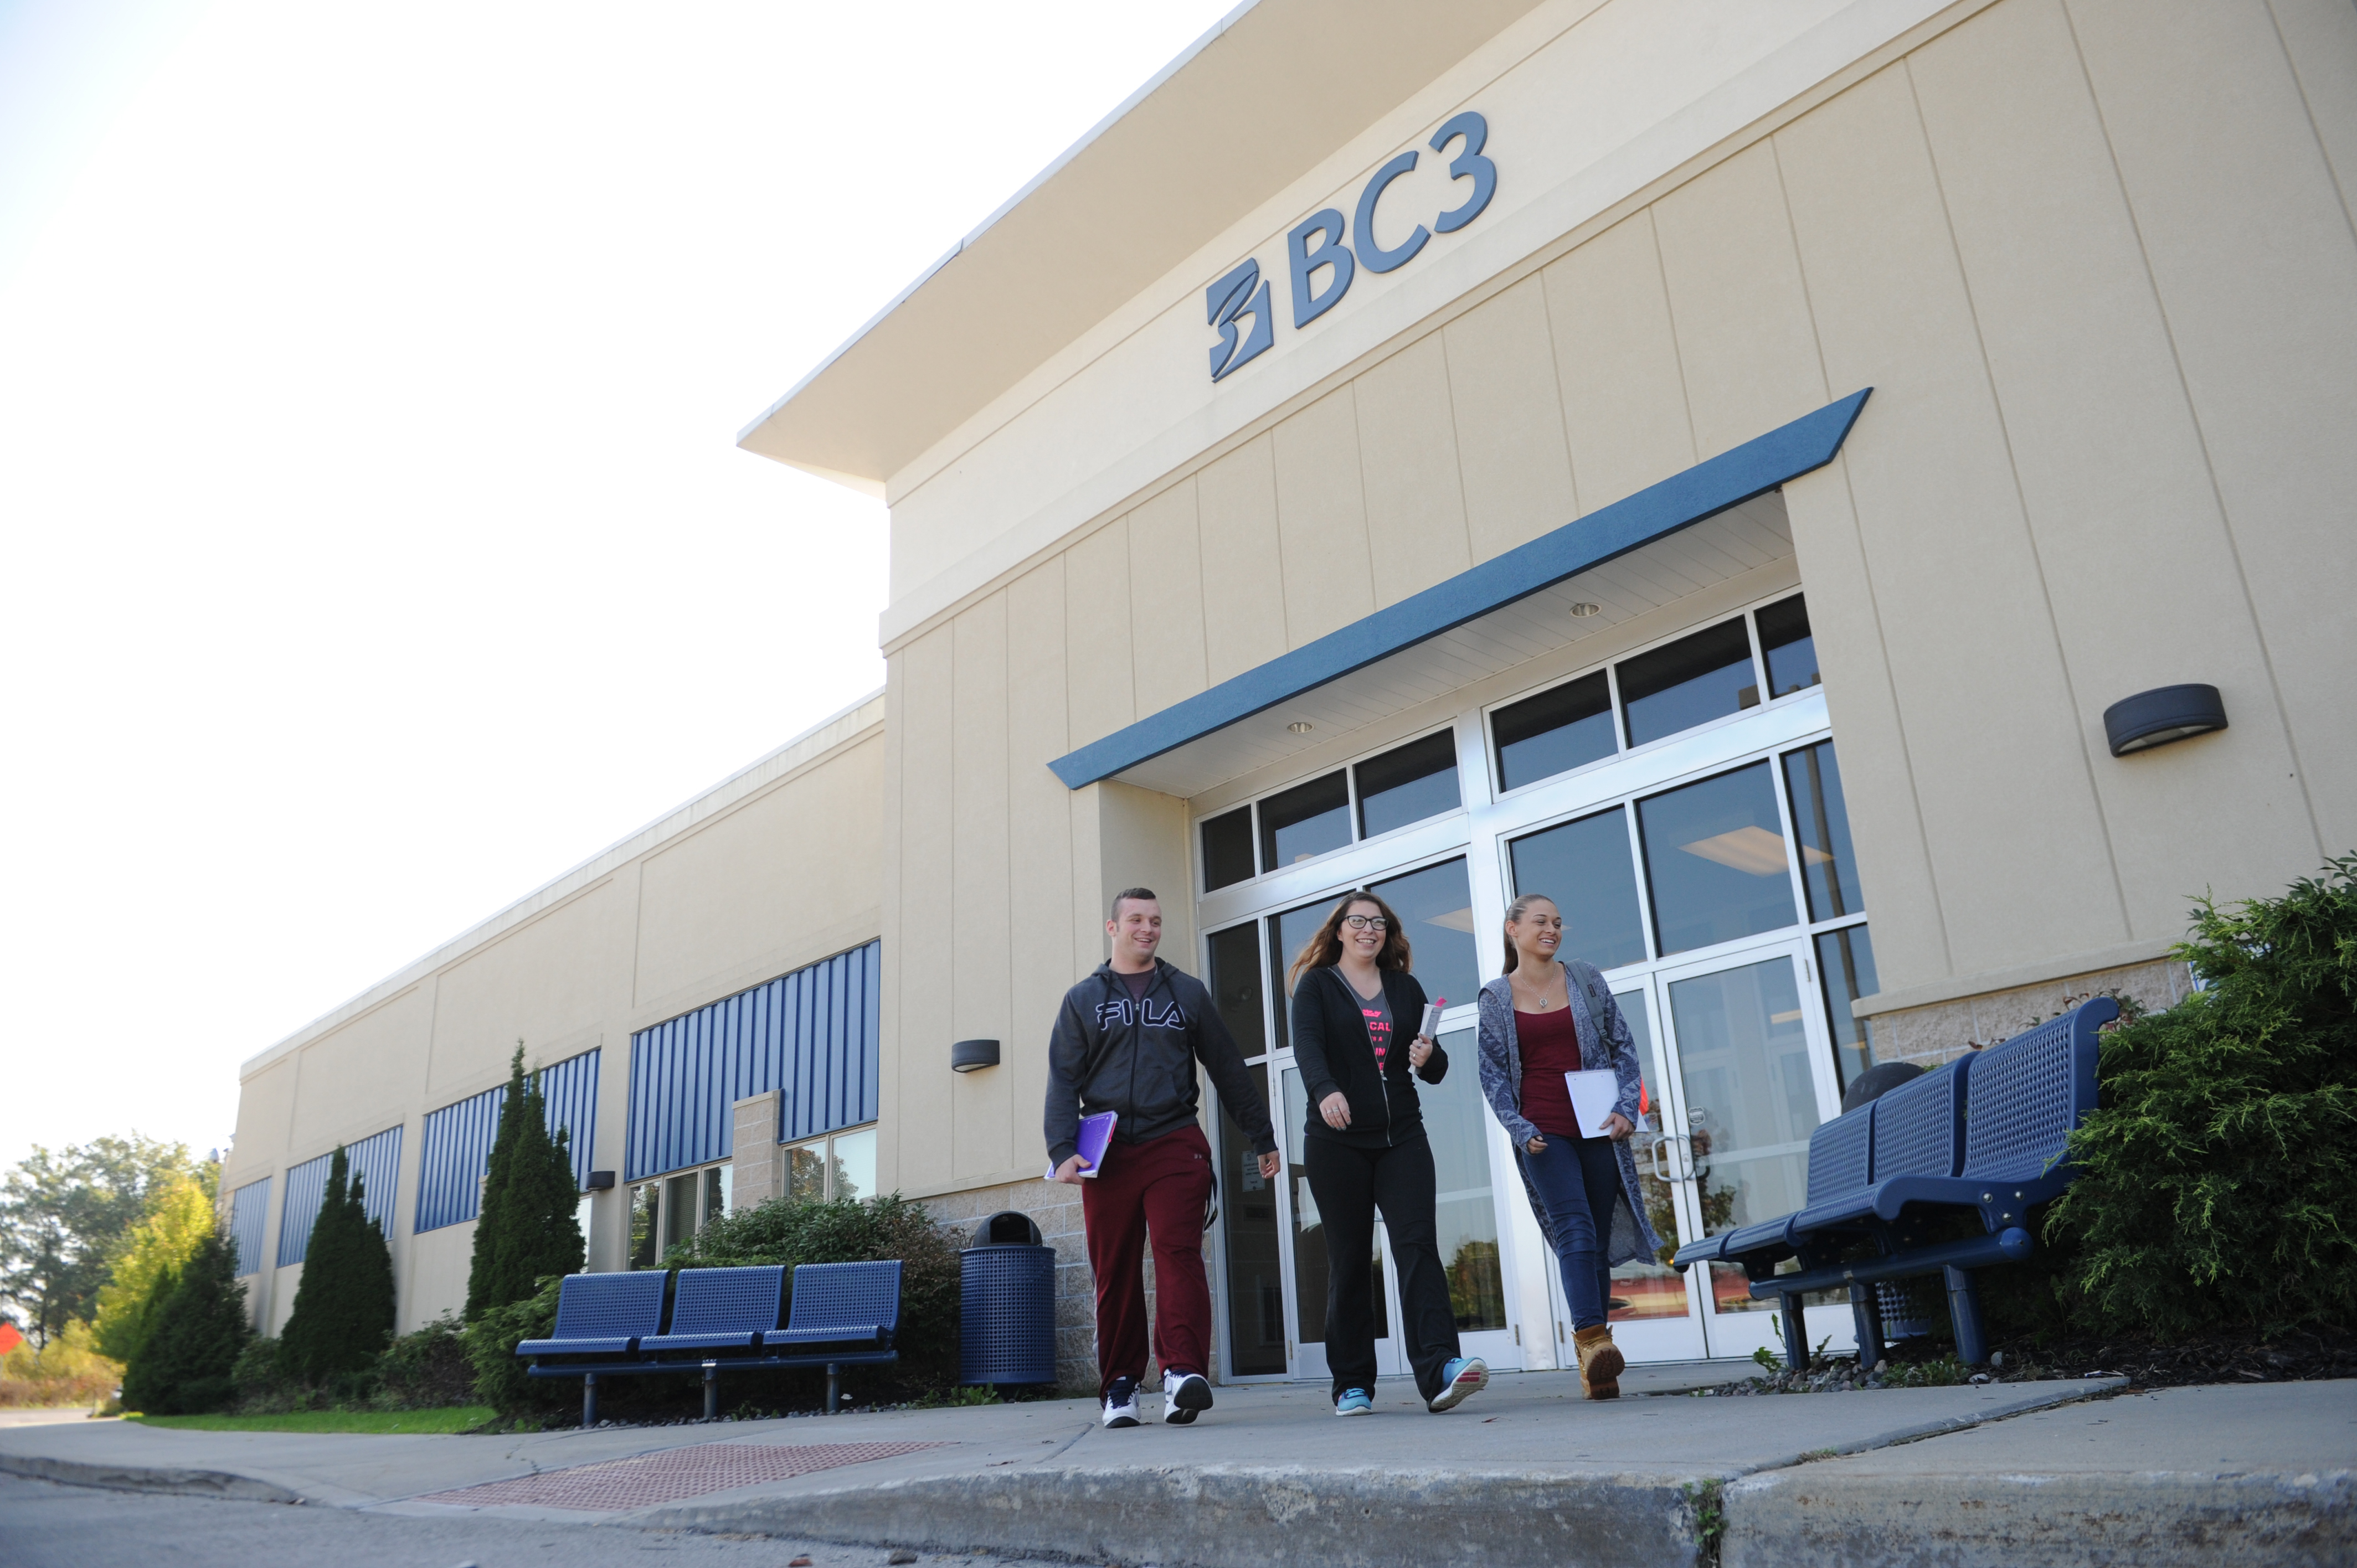 Bc3 no 1 again among states 14 community colleges ellwood city bc3 lawrence crossing students are shown at the butler county community college off campus site in new castle xflitez Choice Image